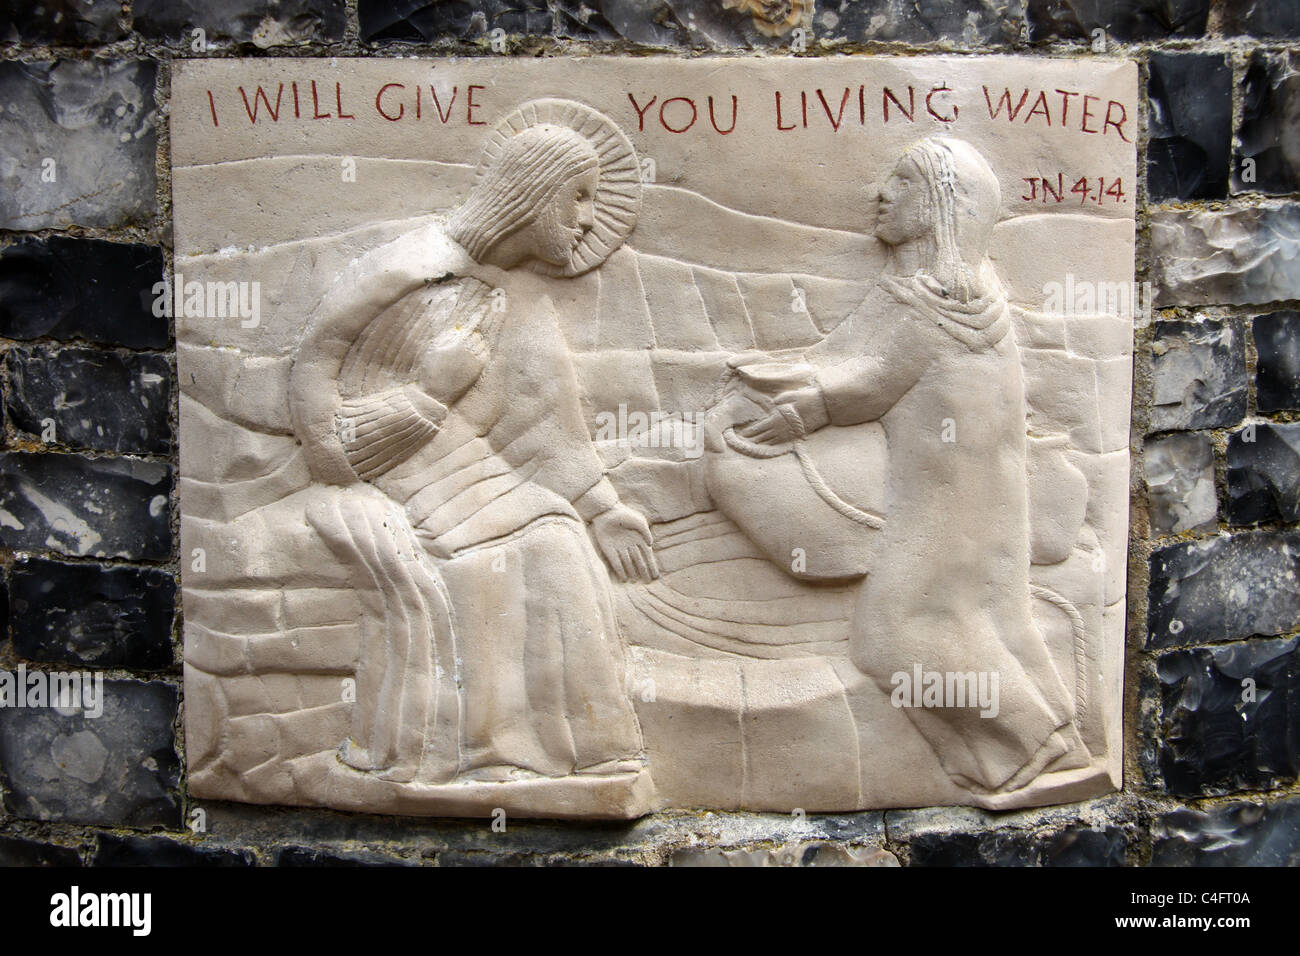 christian stone carving of